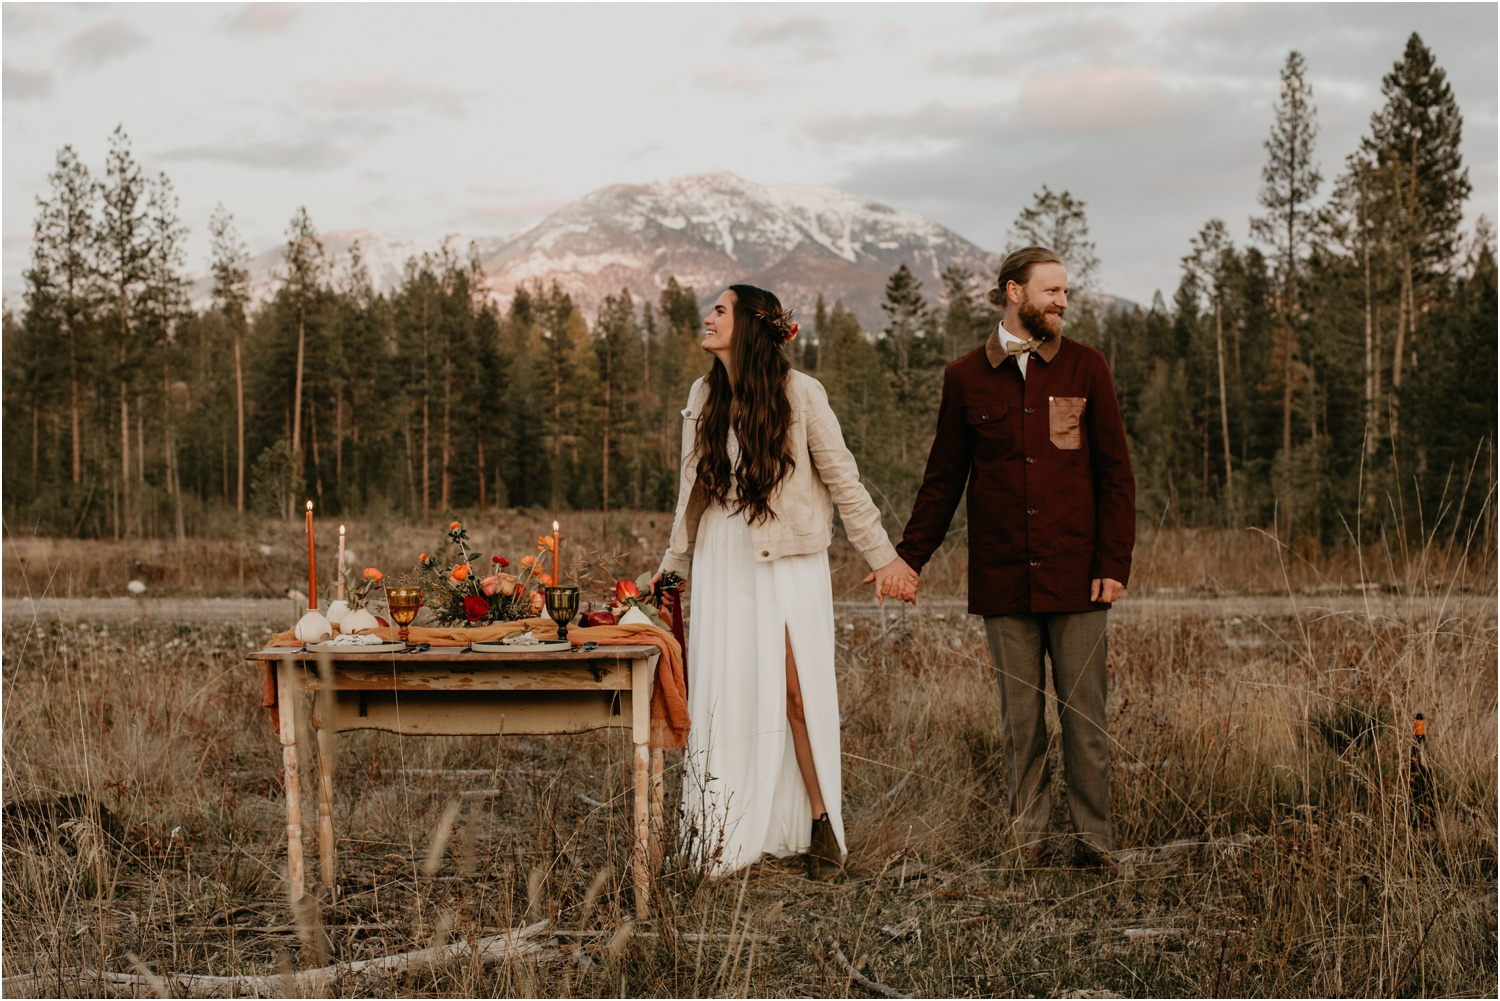 Kimberley bc photographer,cherry creek estate,courtney jess photography,east kootenay photographer,elko wedding,elopement photographer,elopement photography,fernie elopement,fernie photography,fernie wedding,fernie wedding inspiration,fernie wedding photographer,fernie wedding photography,green petal fernie,green petal florist,invermere wedding,invermere wedding photographer,kimberley wedding,kimberley wedding photographer,kootenay elopement photographer,kootenay photographer,kootenay wedding,kootenay wedding photographer,megan blagborne,nelson wedding,photographer,purcell mountains,rocky mountain elopement,sparwood photographer,the green petal,